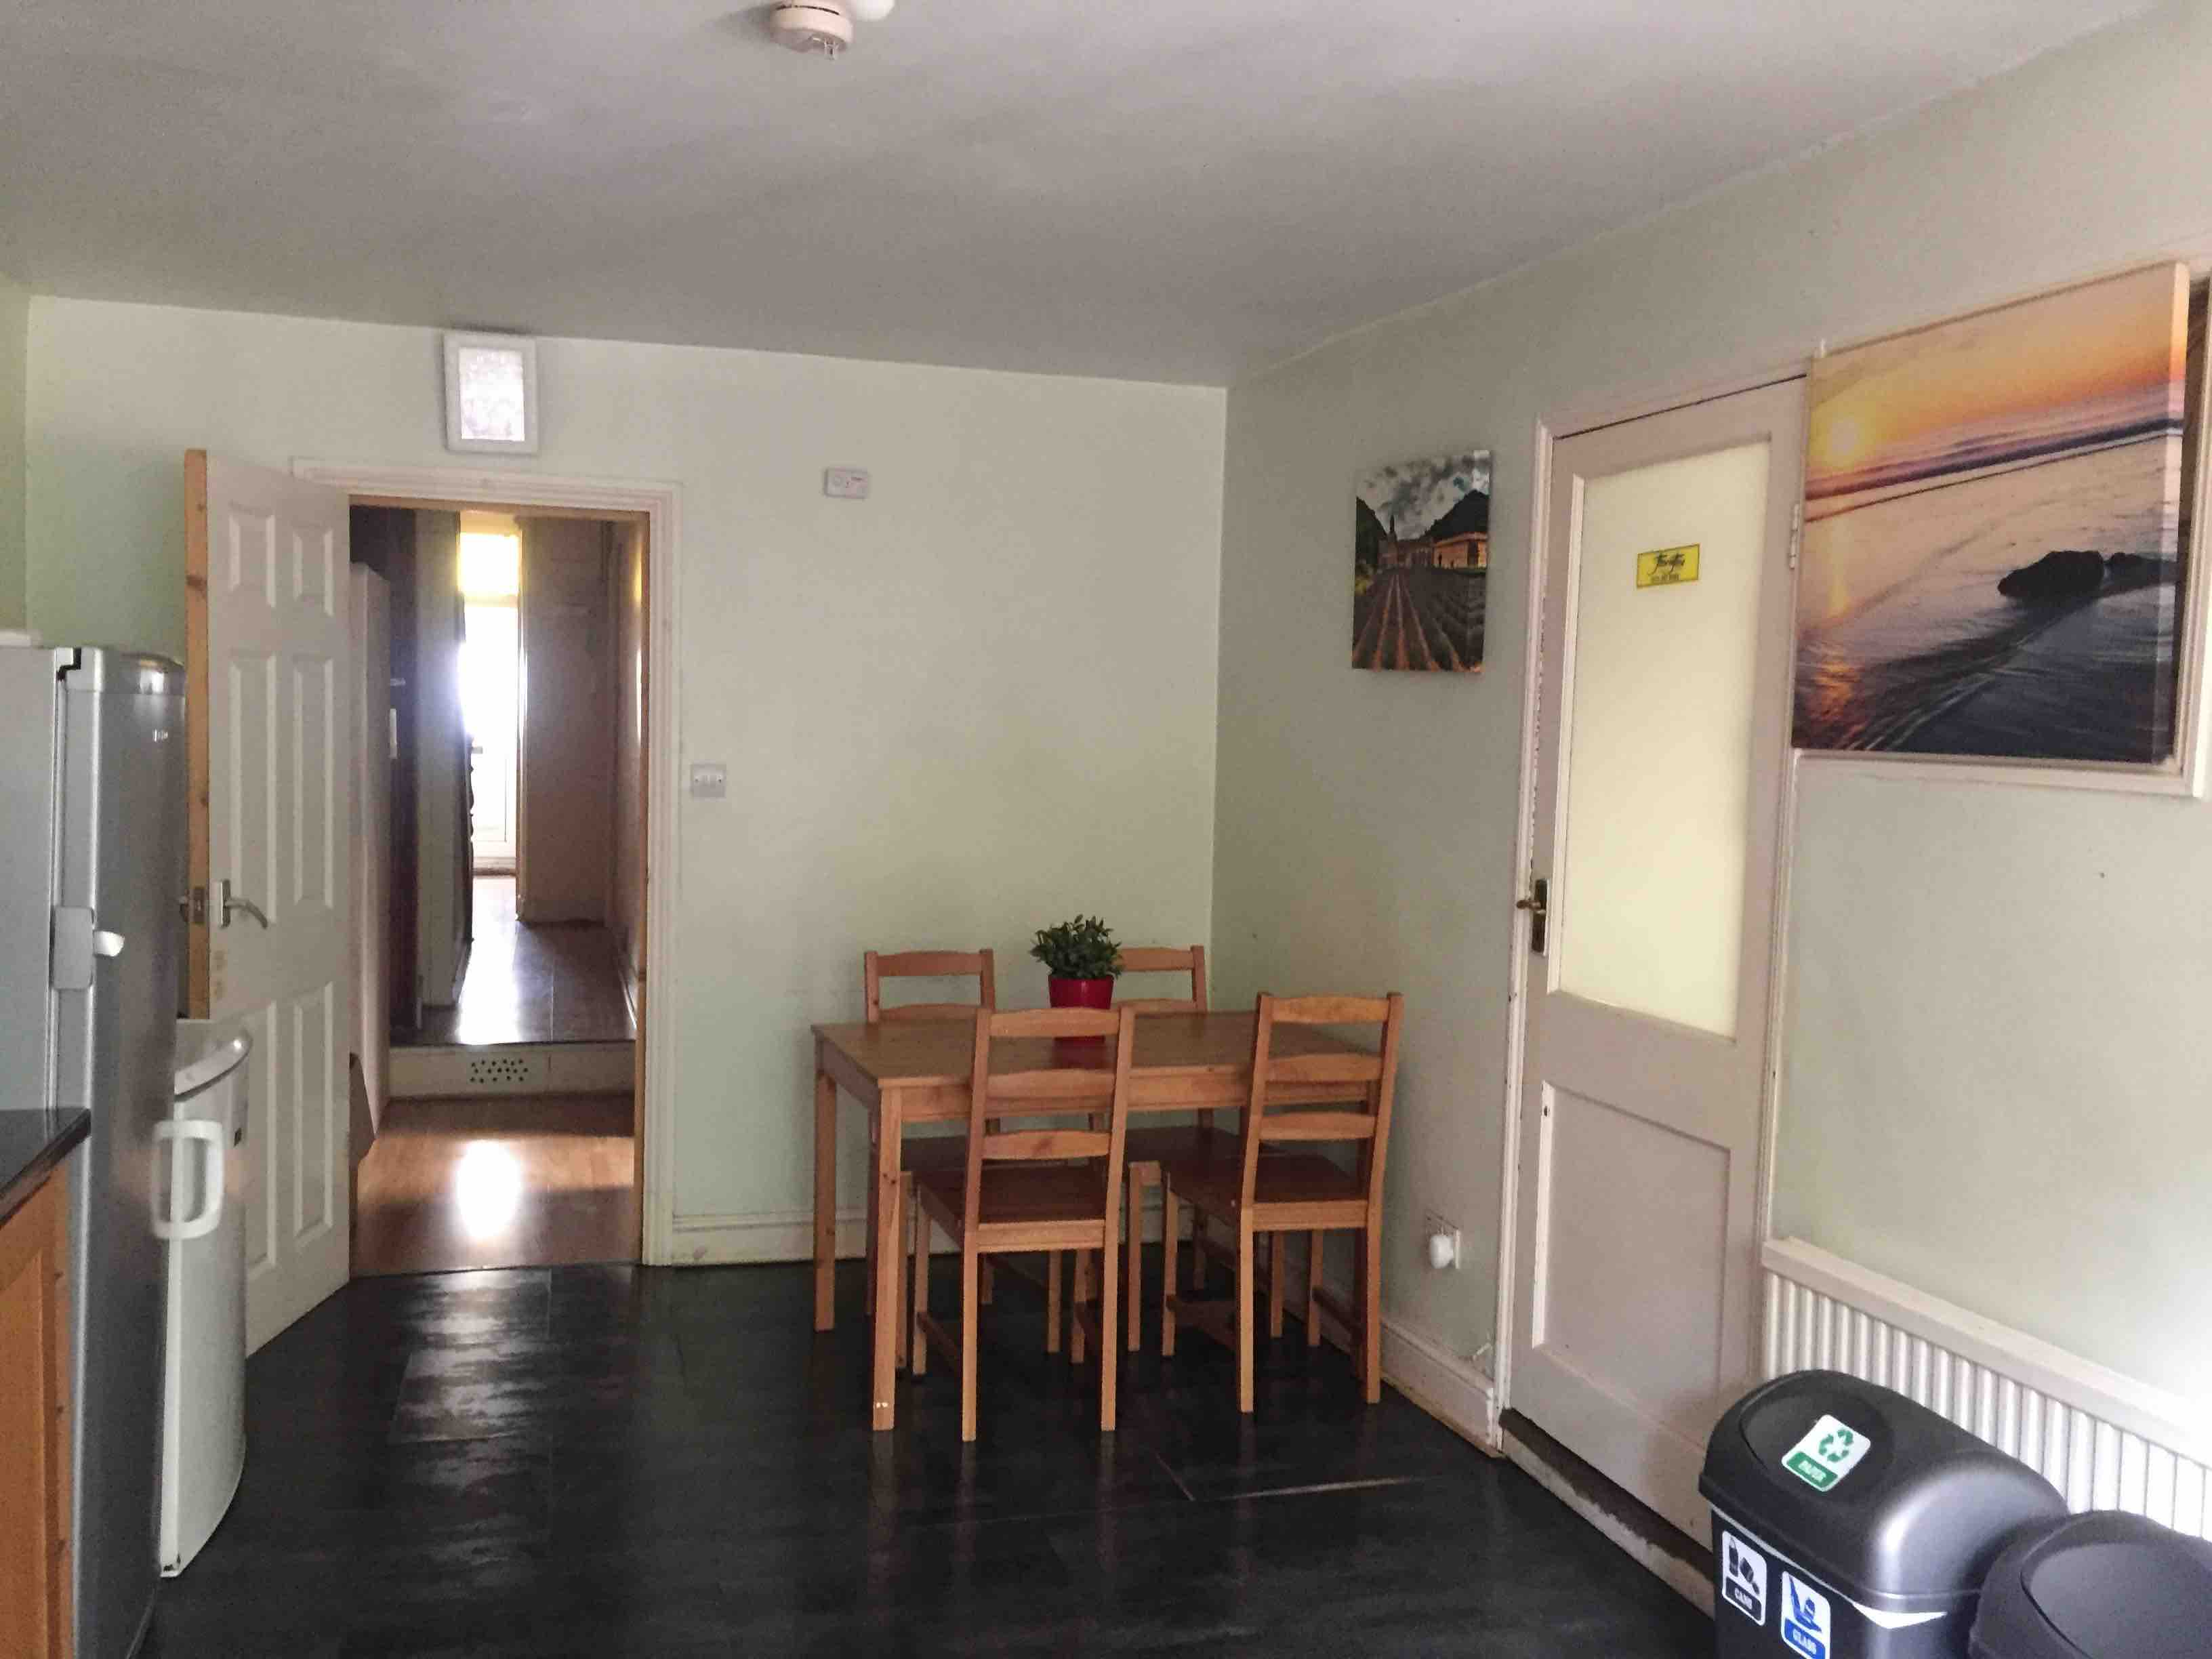 1 room in Bruce Grove, London, N17 8NG RoomsLocal image